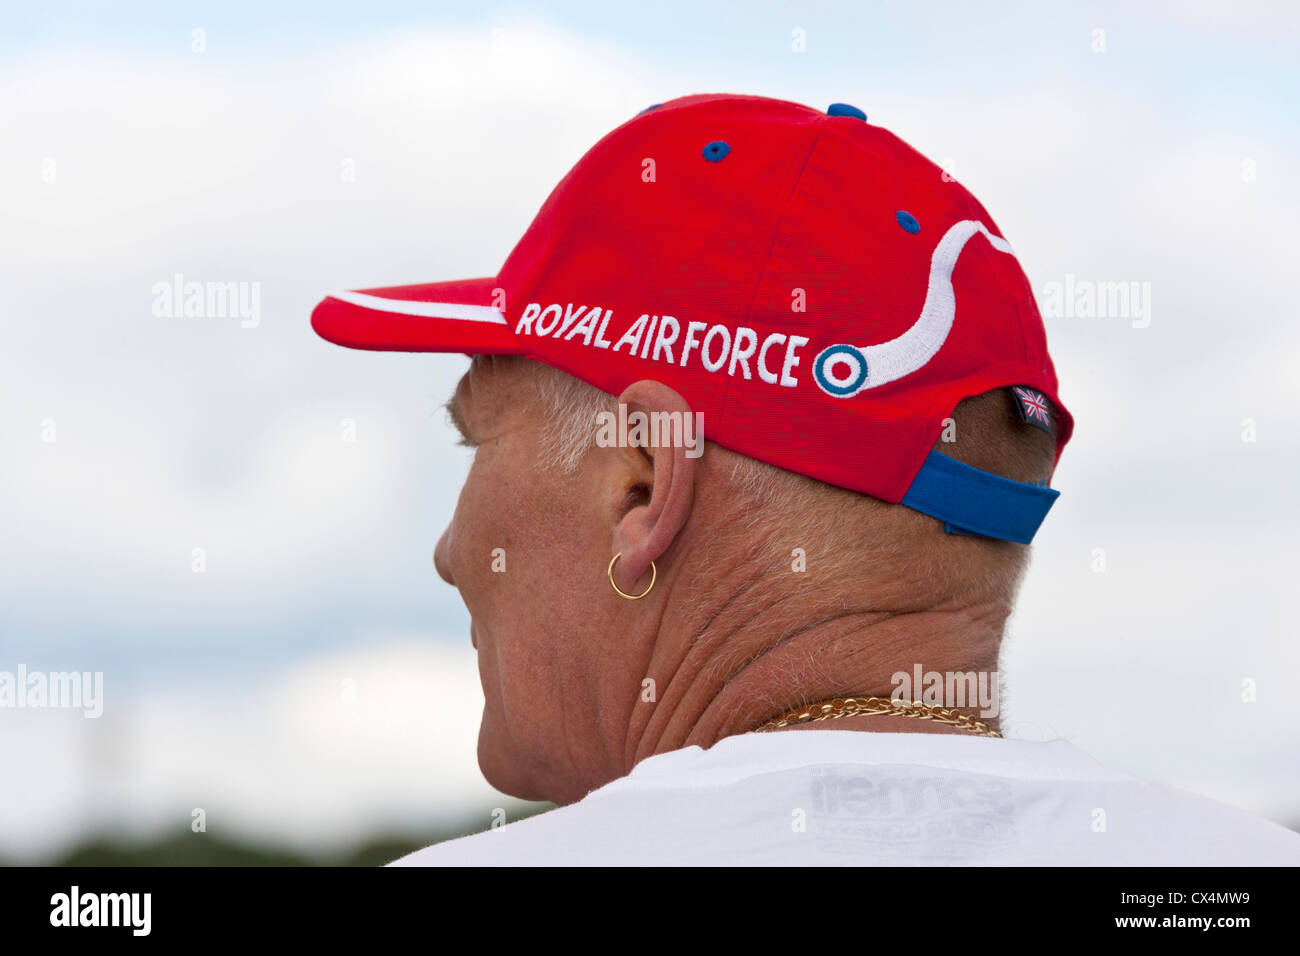 Man wearing Royal Air Force Red Arrows red hat at Best of British Show, Cotswold (Kemble EGBP) Airport. JMH6062 - Stock Image